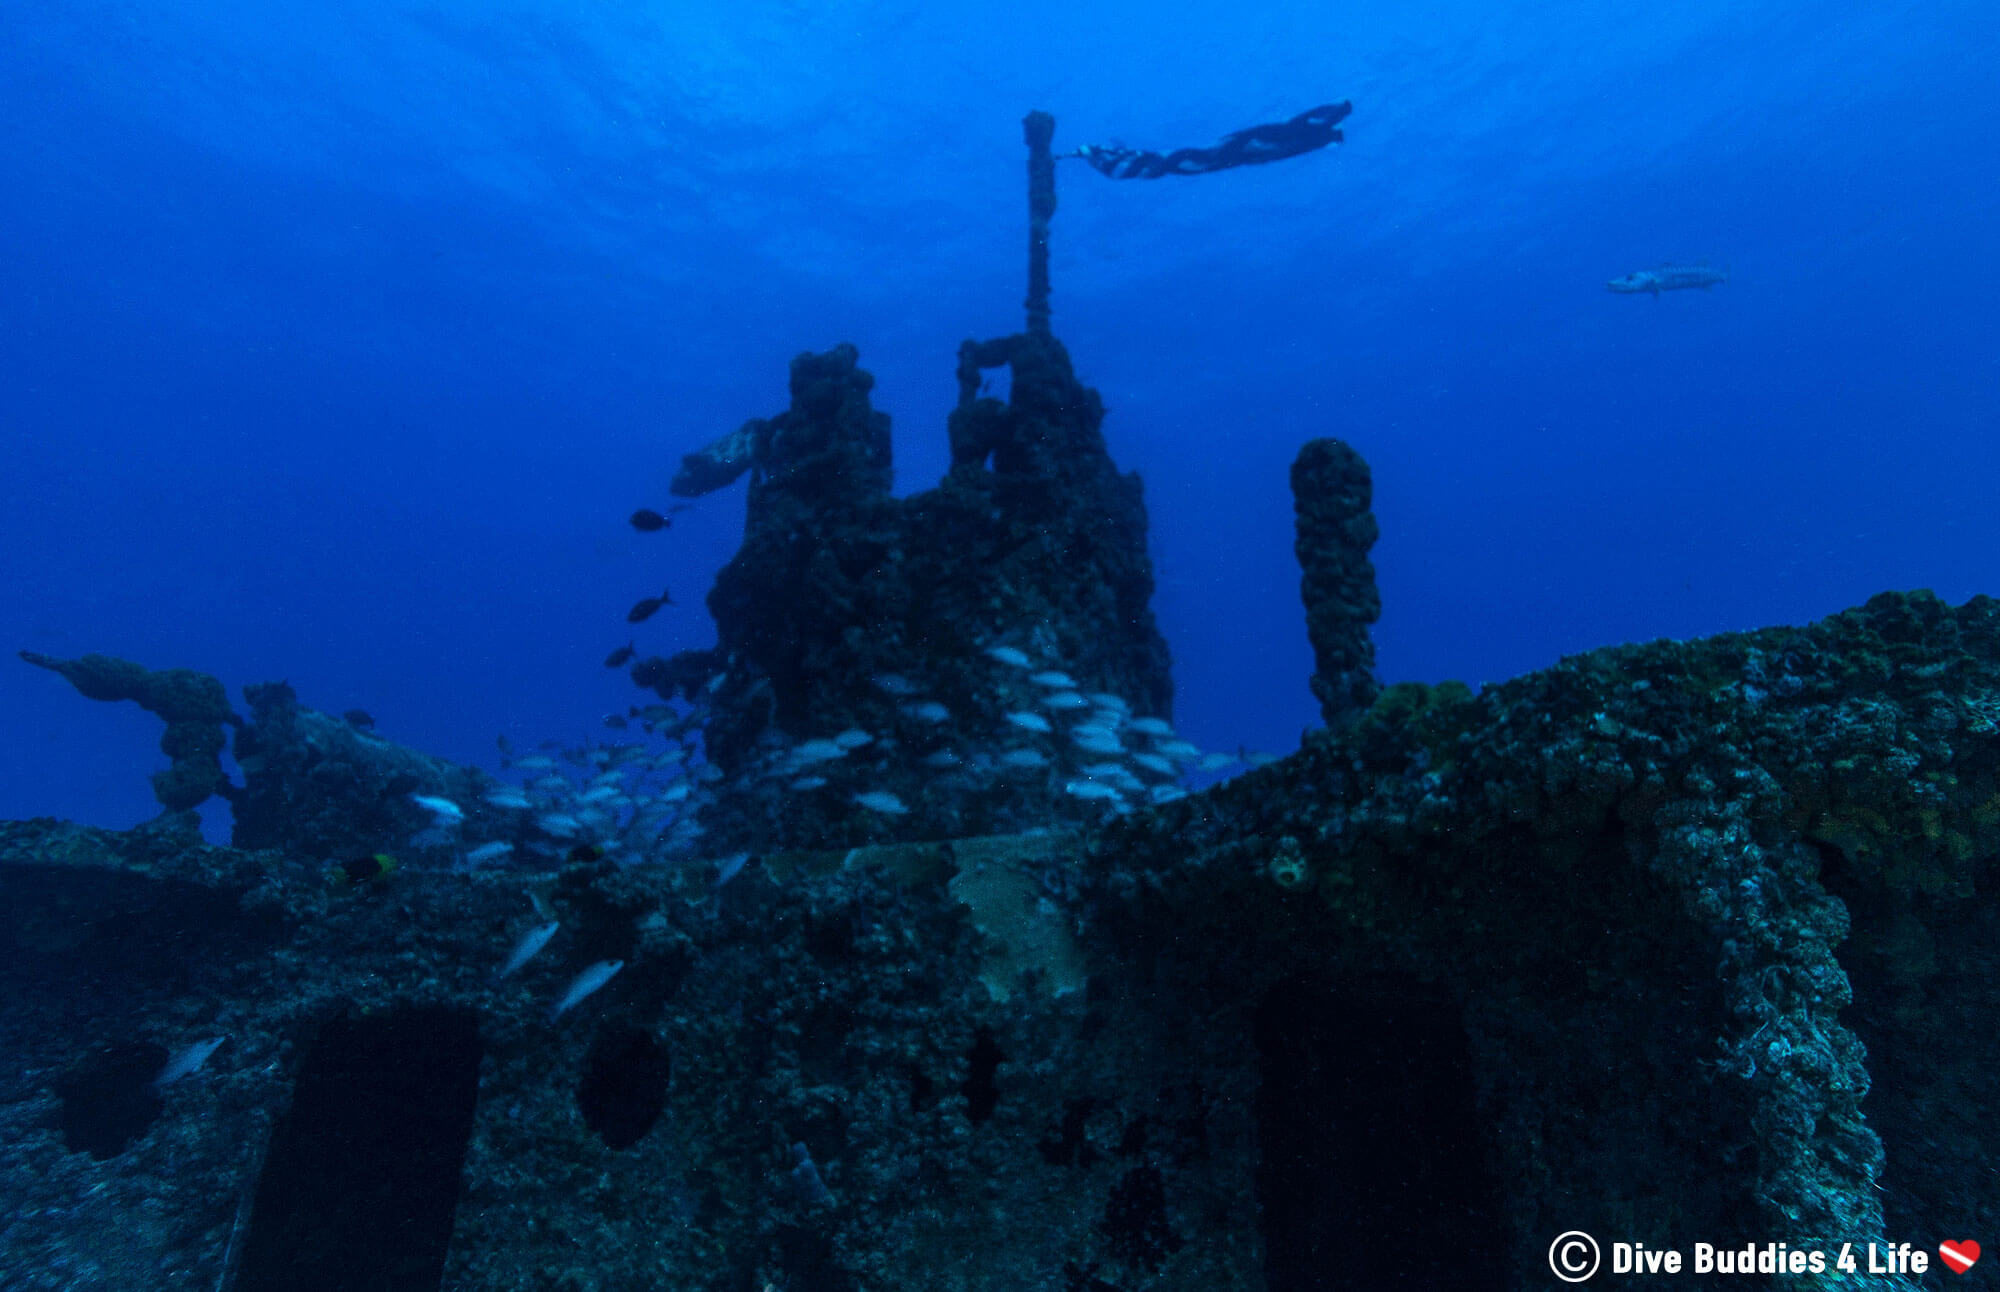 The Top And Flag On The Spiegel Grove Shipwreck, Part Of The Underwater Shipwreck Trail In The Florida Keys, Key Largo, USA Diving